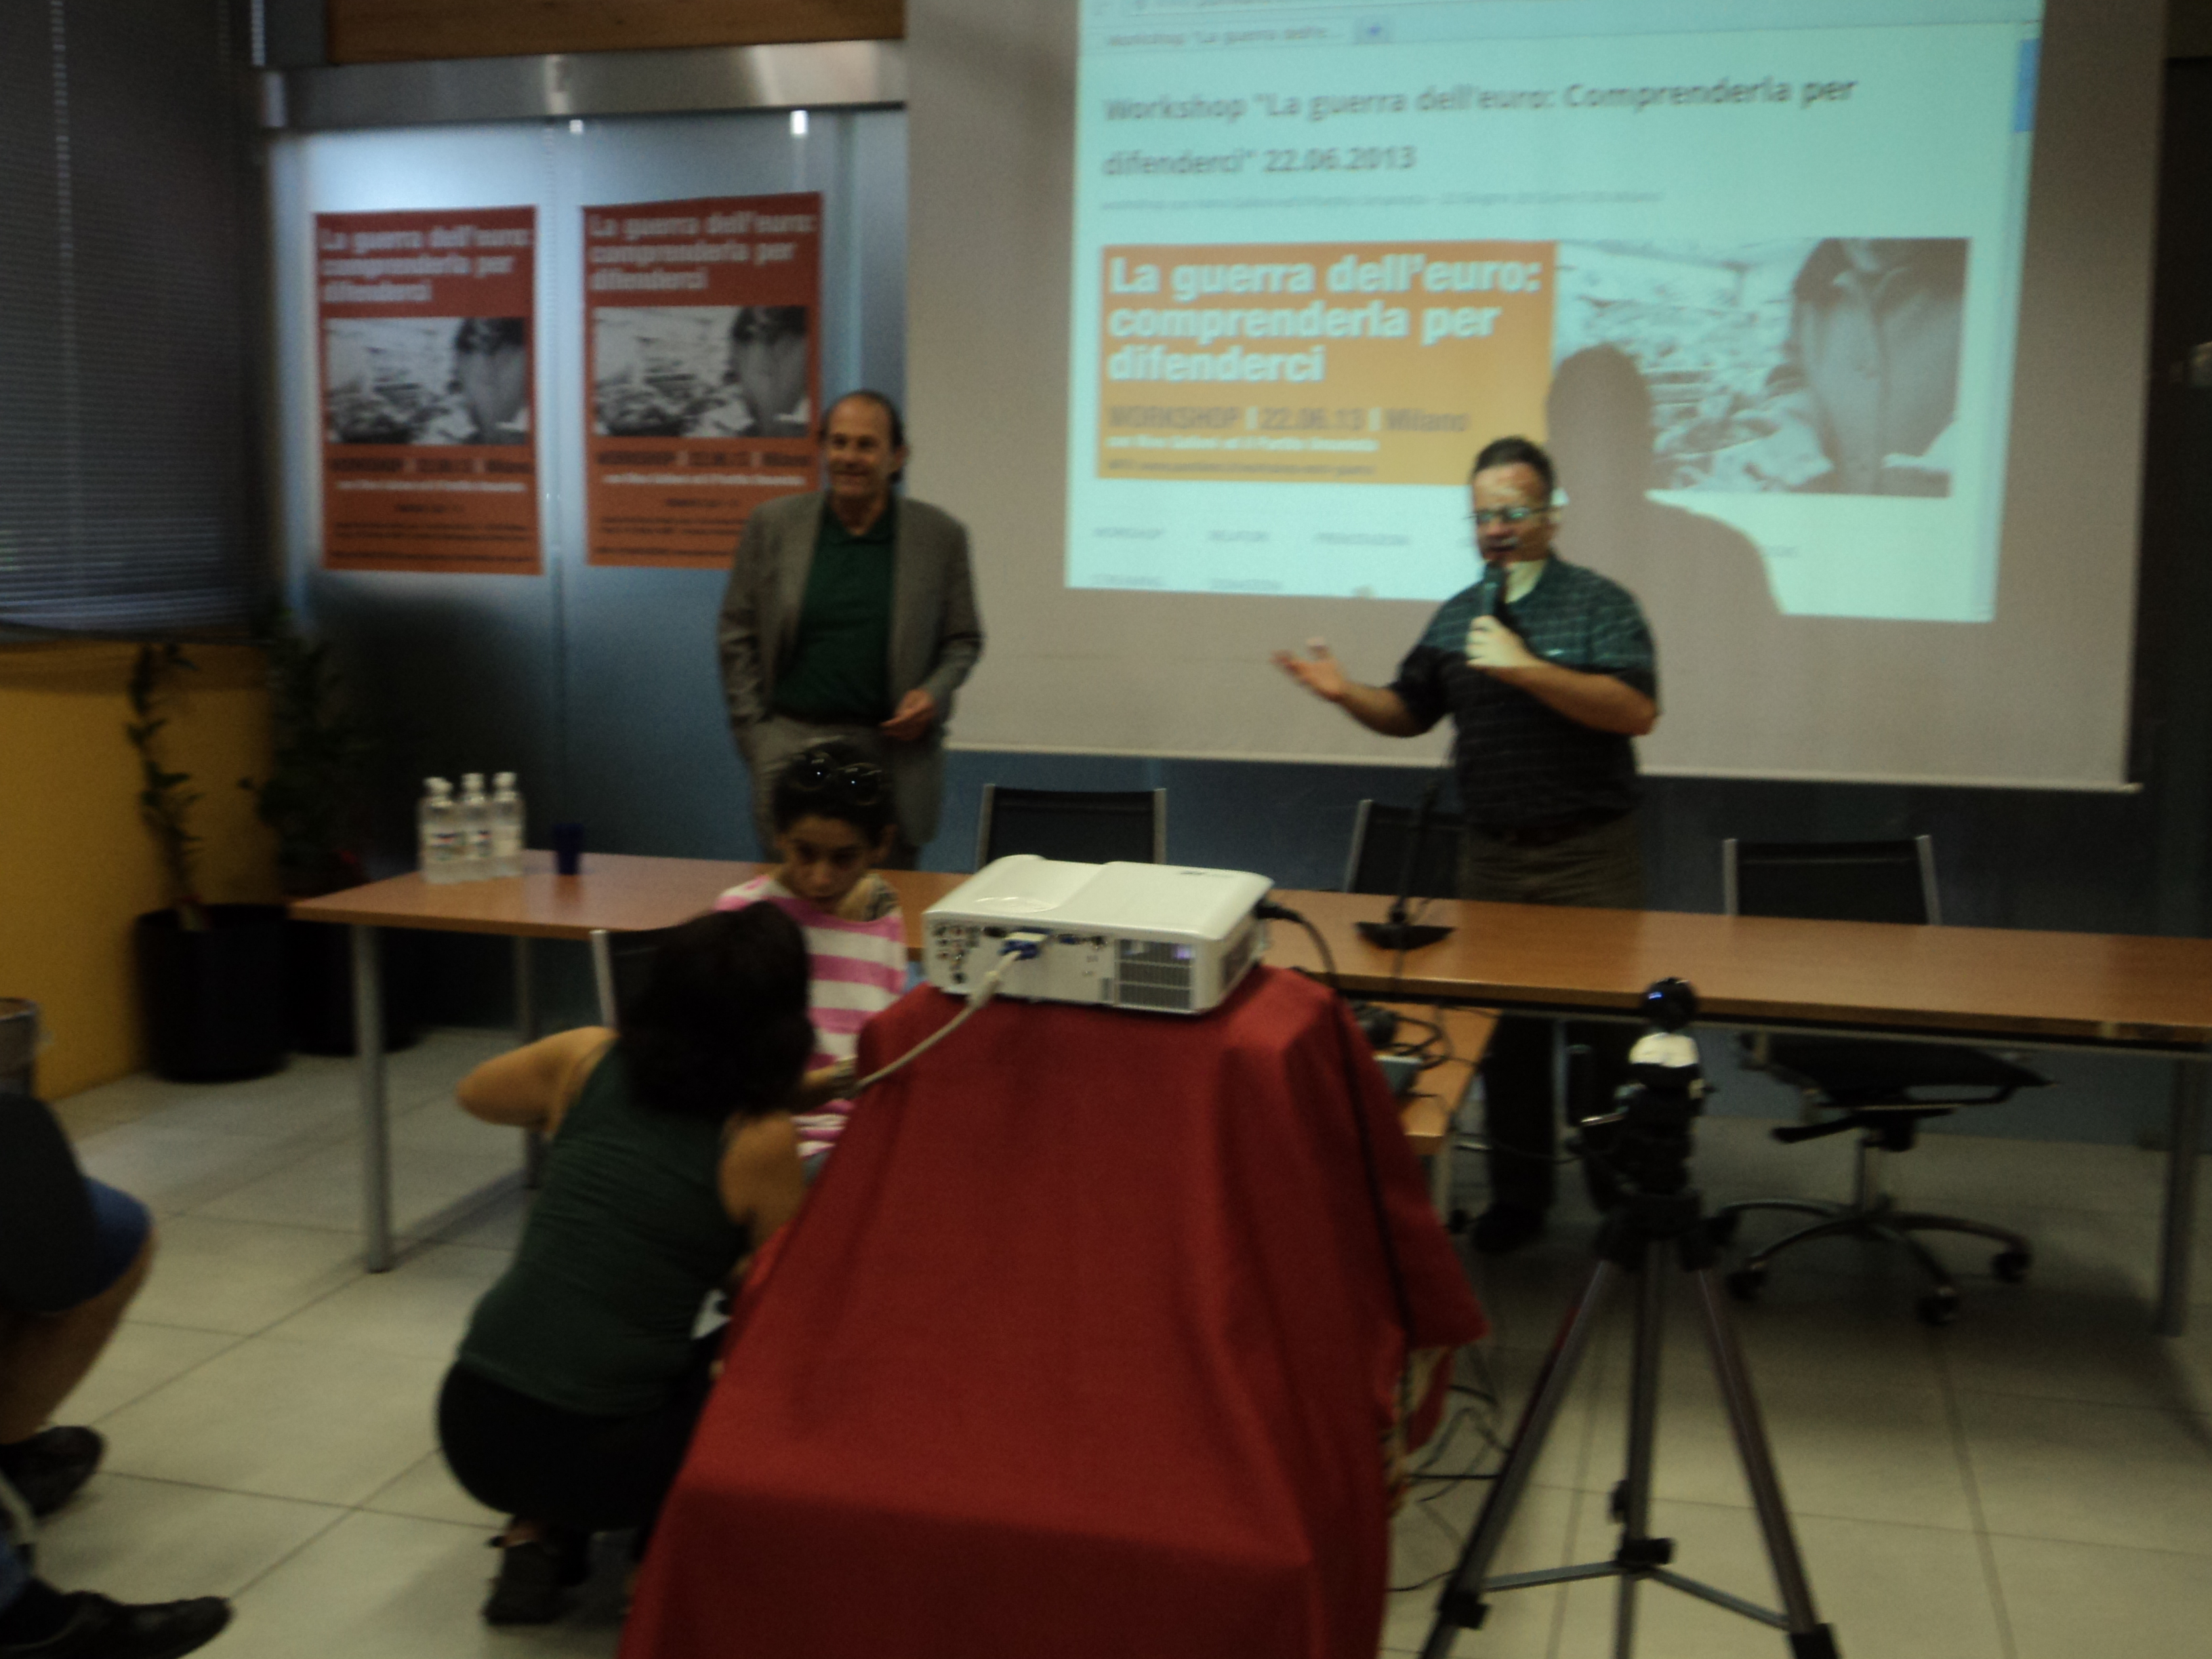 Nino Galloni Pubblico Workshop Guerra Euro